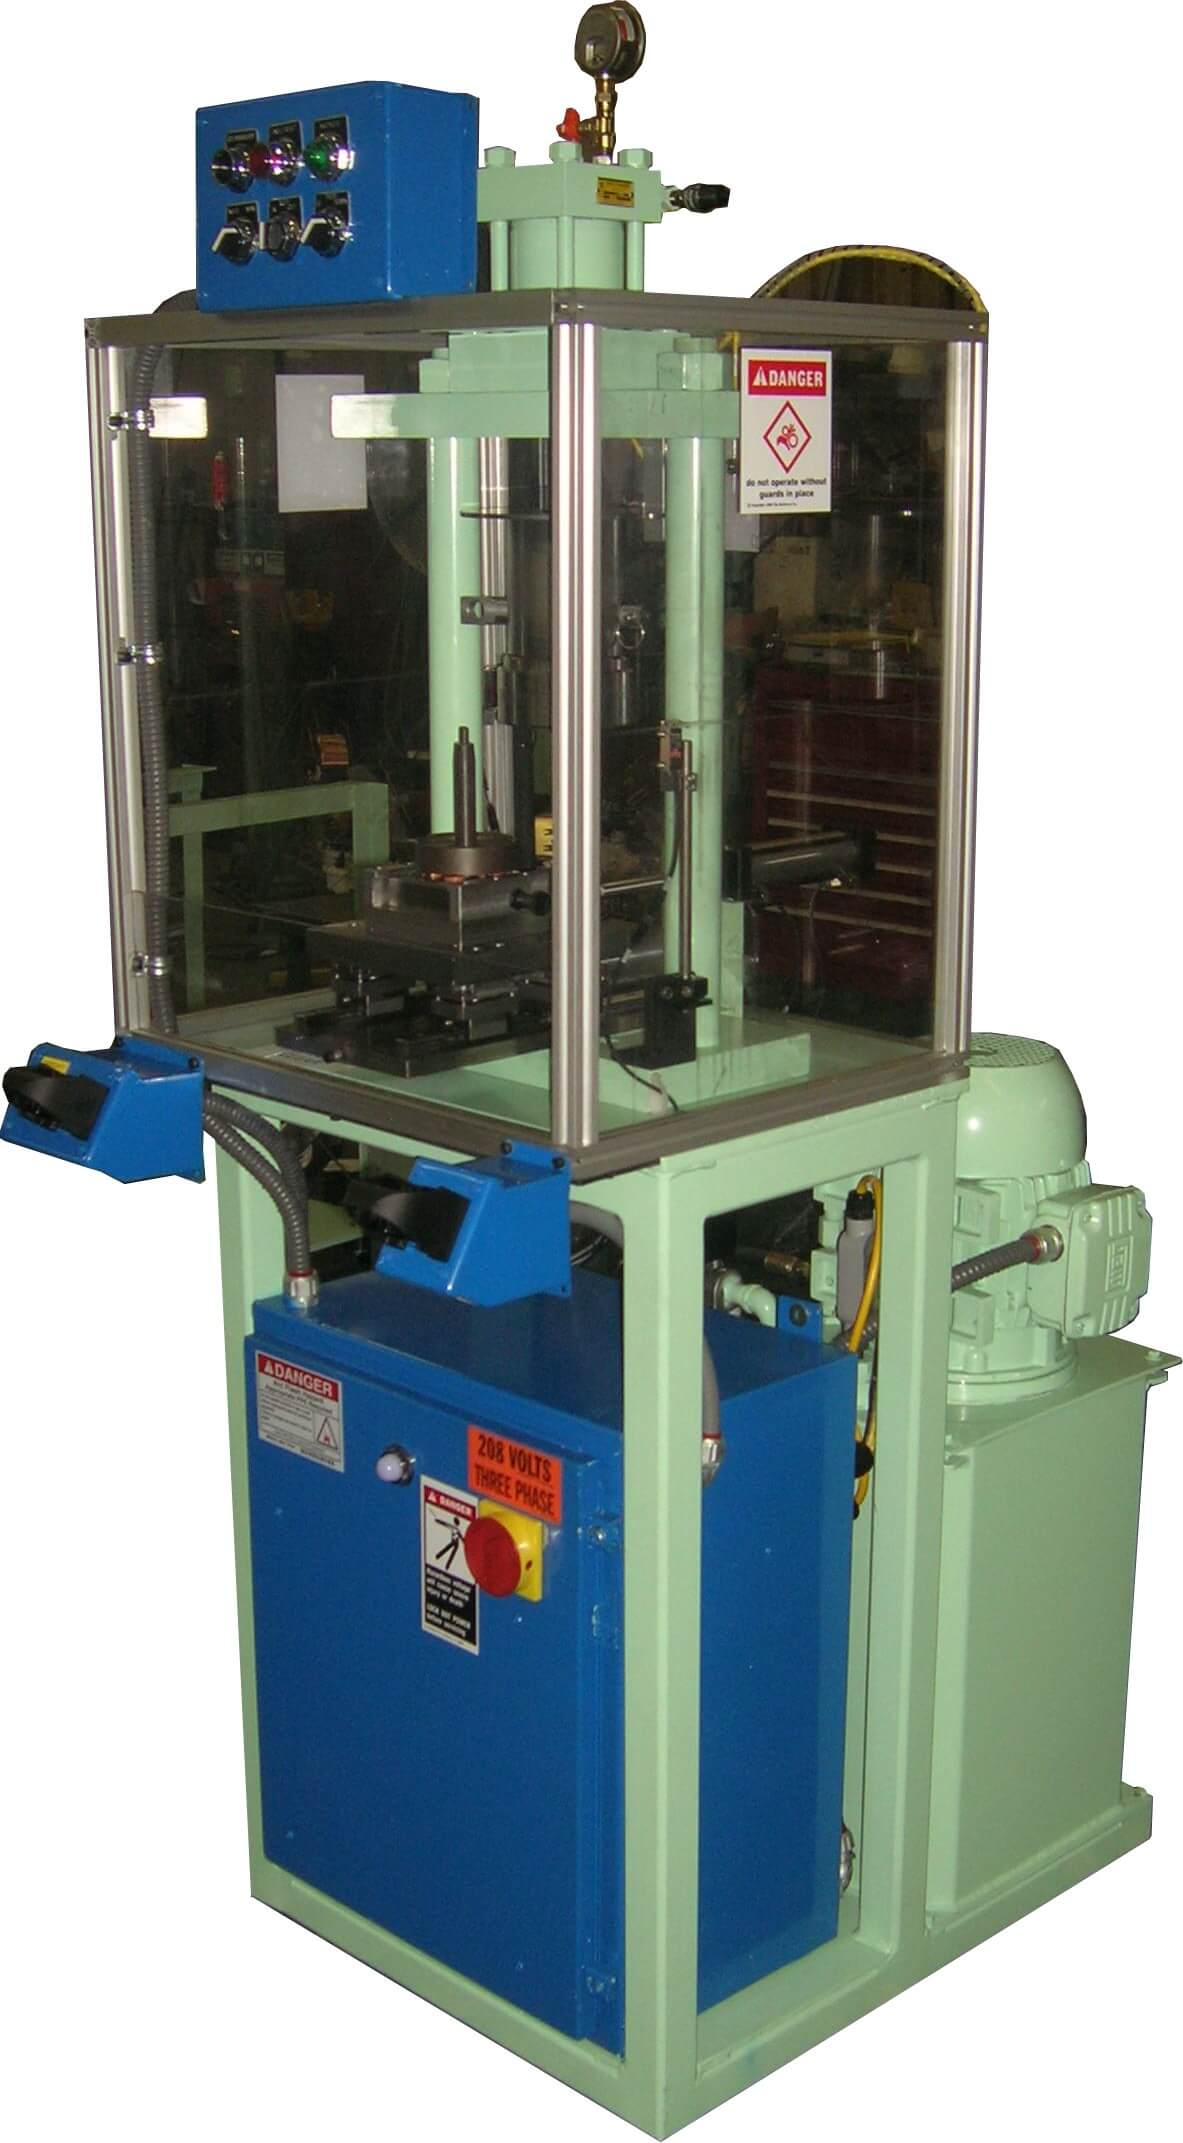 5 ton dual stage press with transfer rails